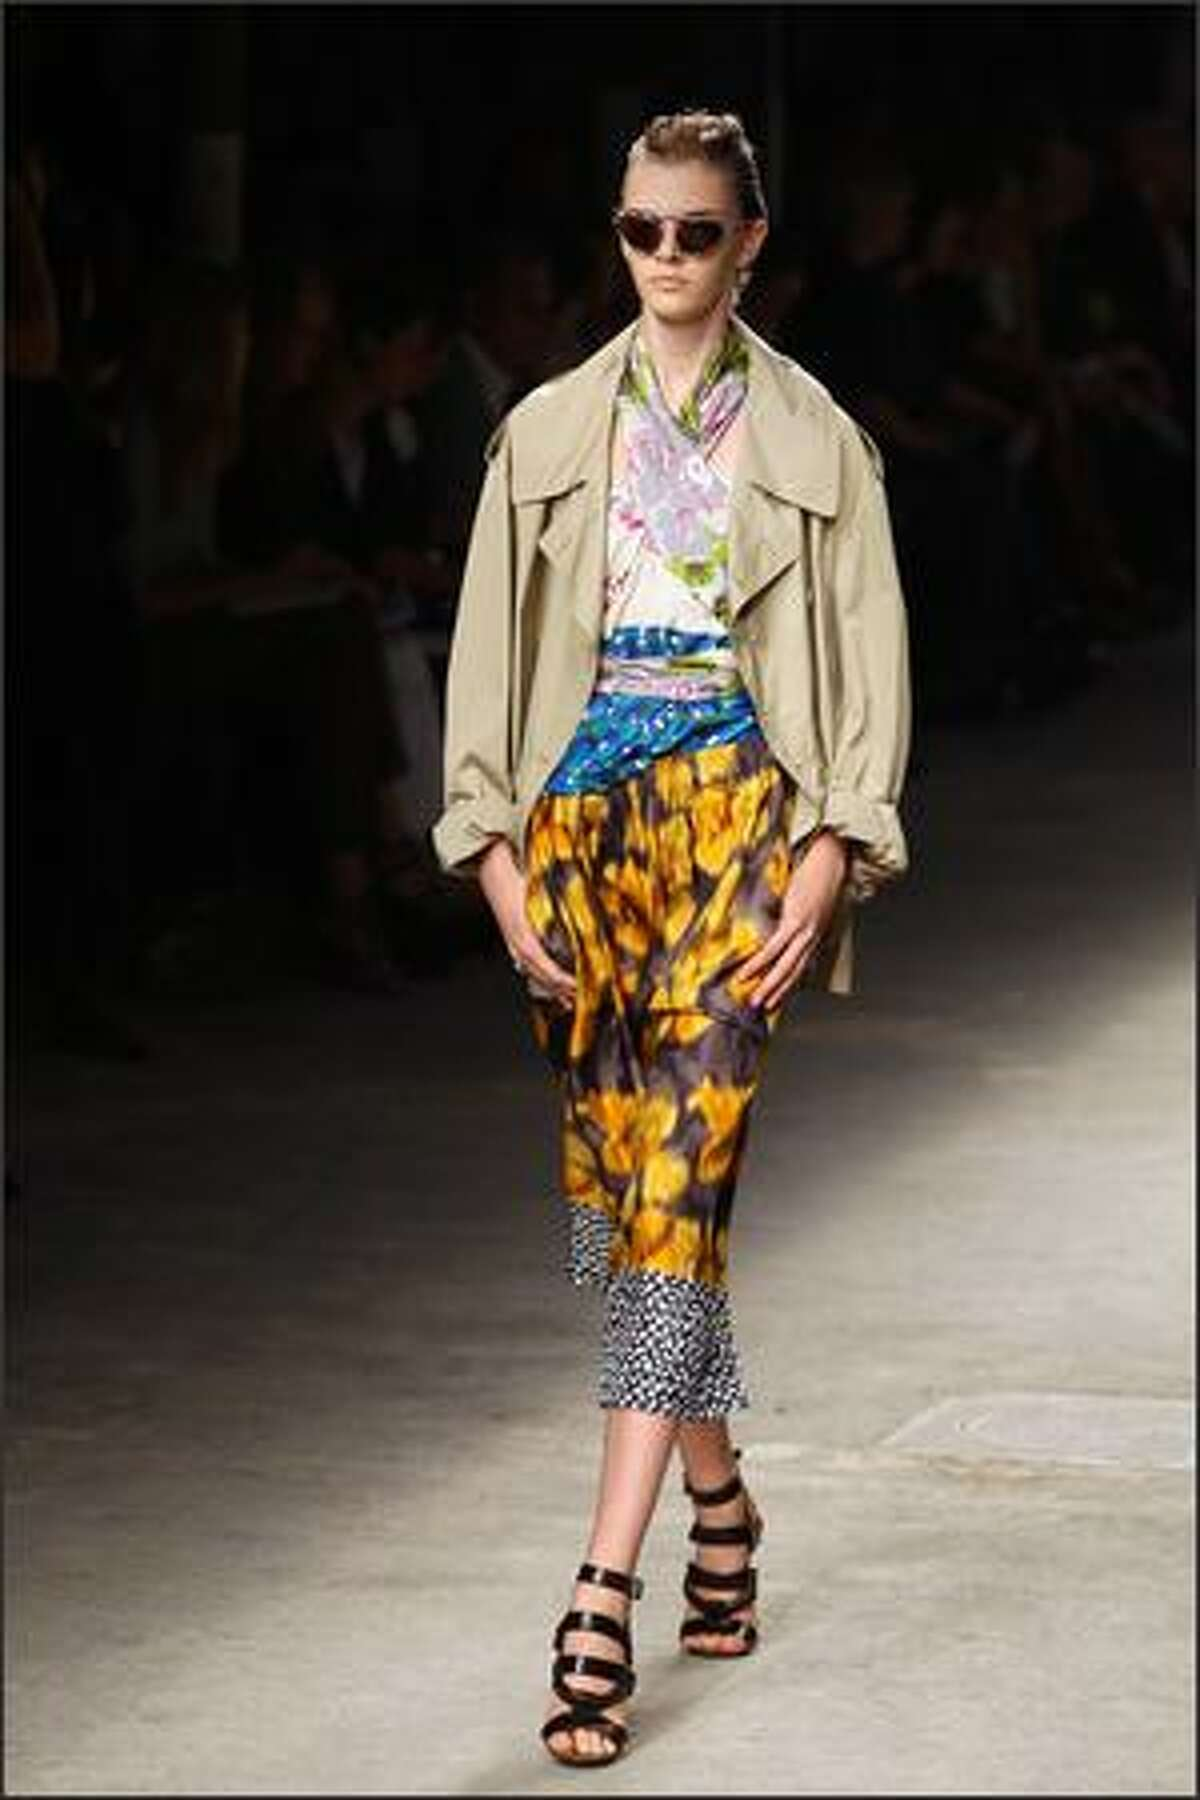 A model presents a creation by Dries Van Noten.